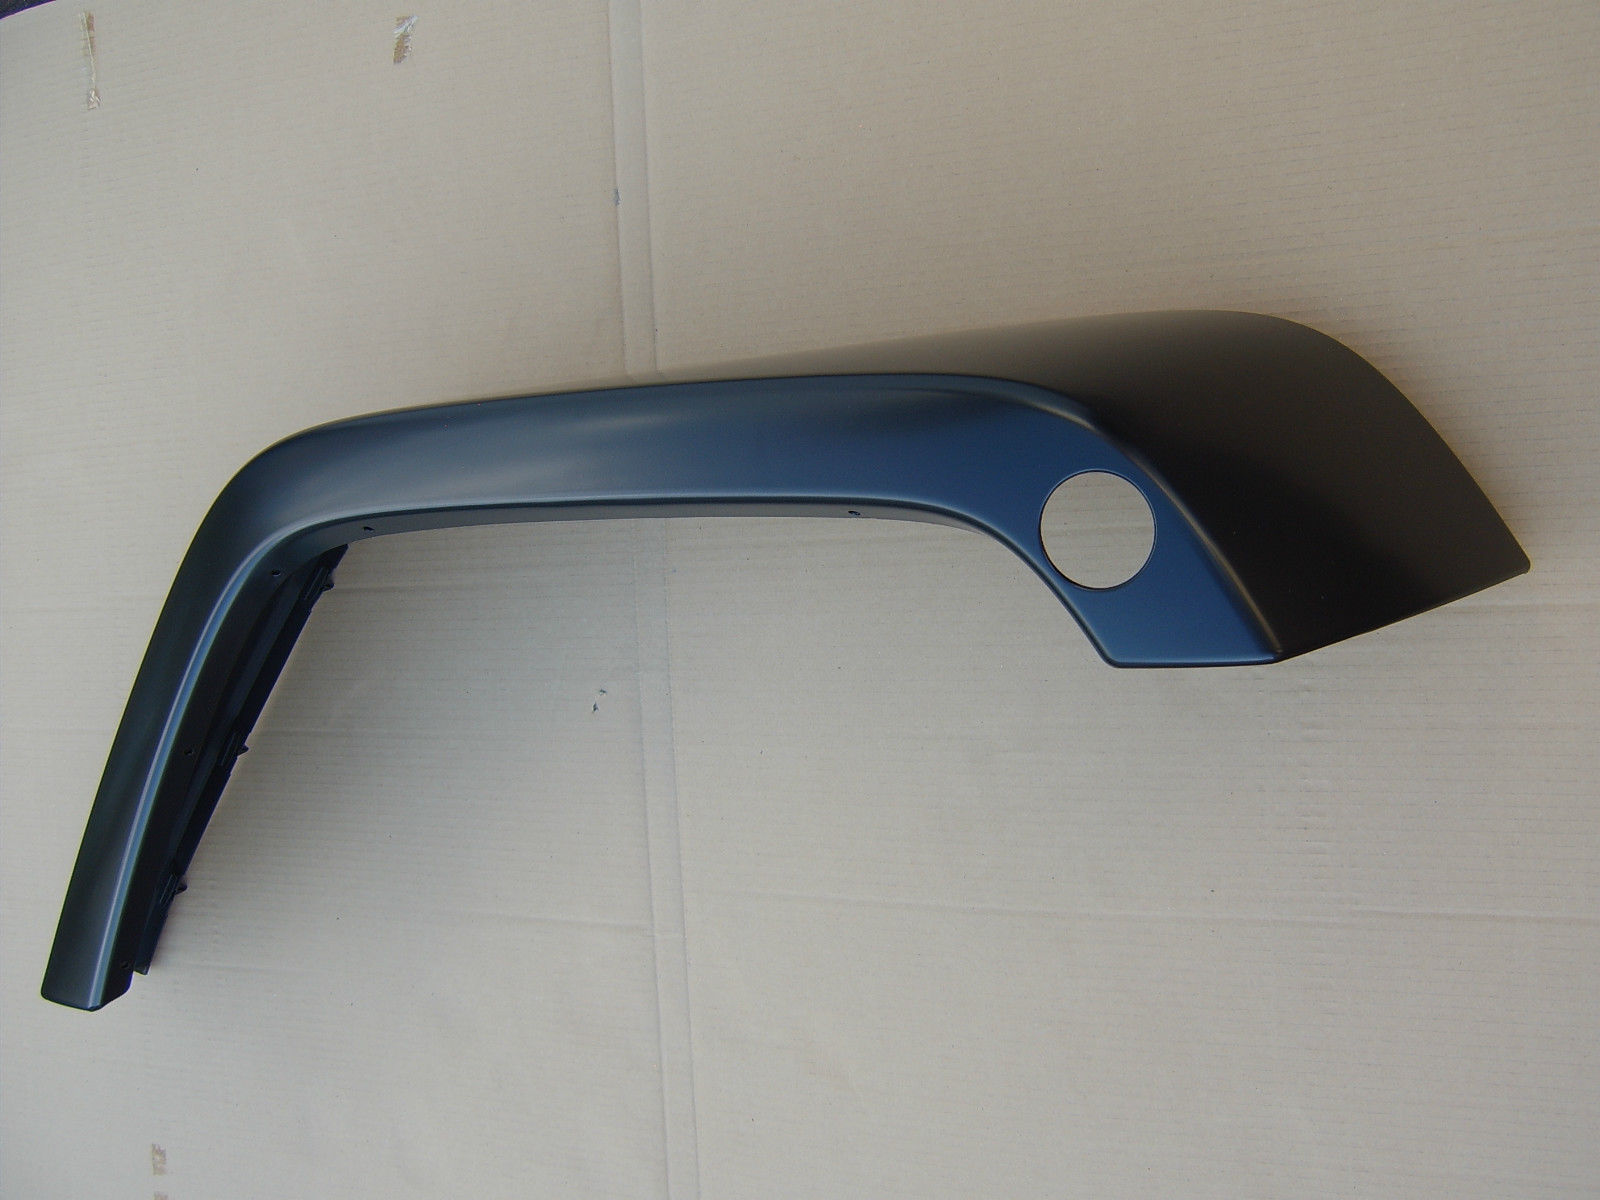 WRANGLER 07-17 Right Front FENDER FLARE (Paint to match)